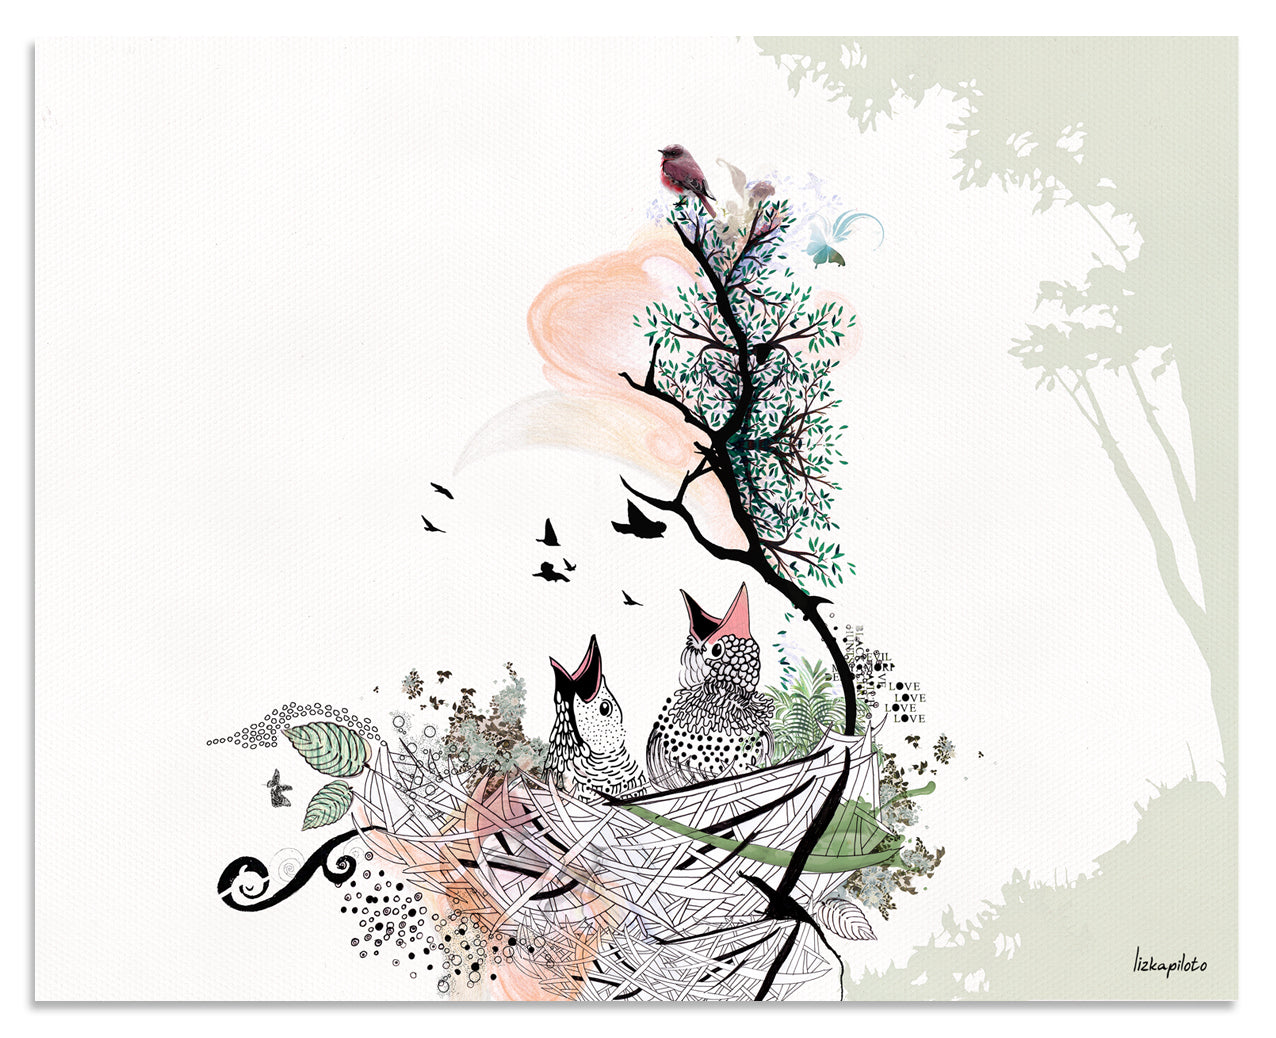 Birds Nest Painting - Liz Kapiloto Art & Design